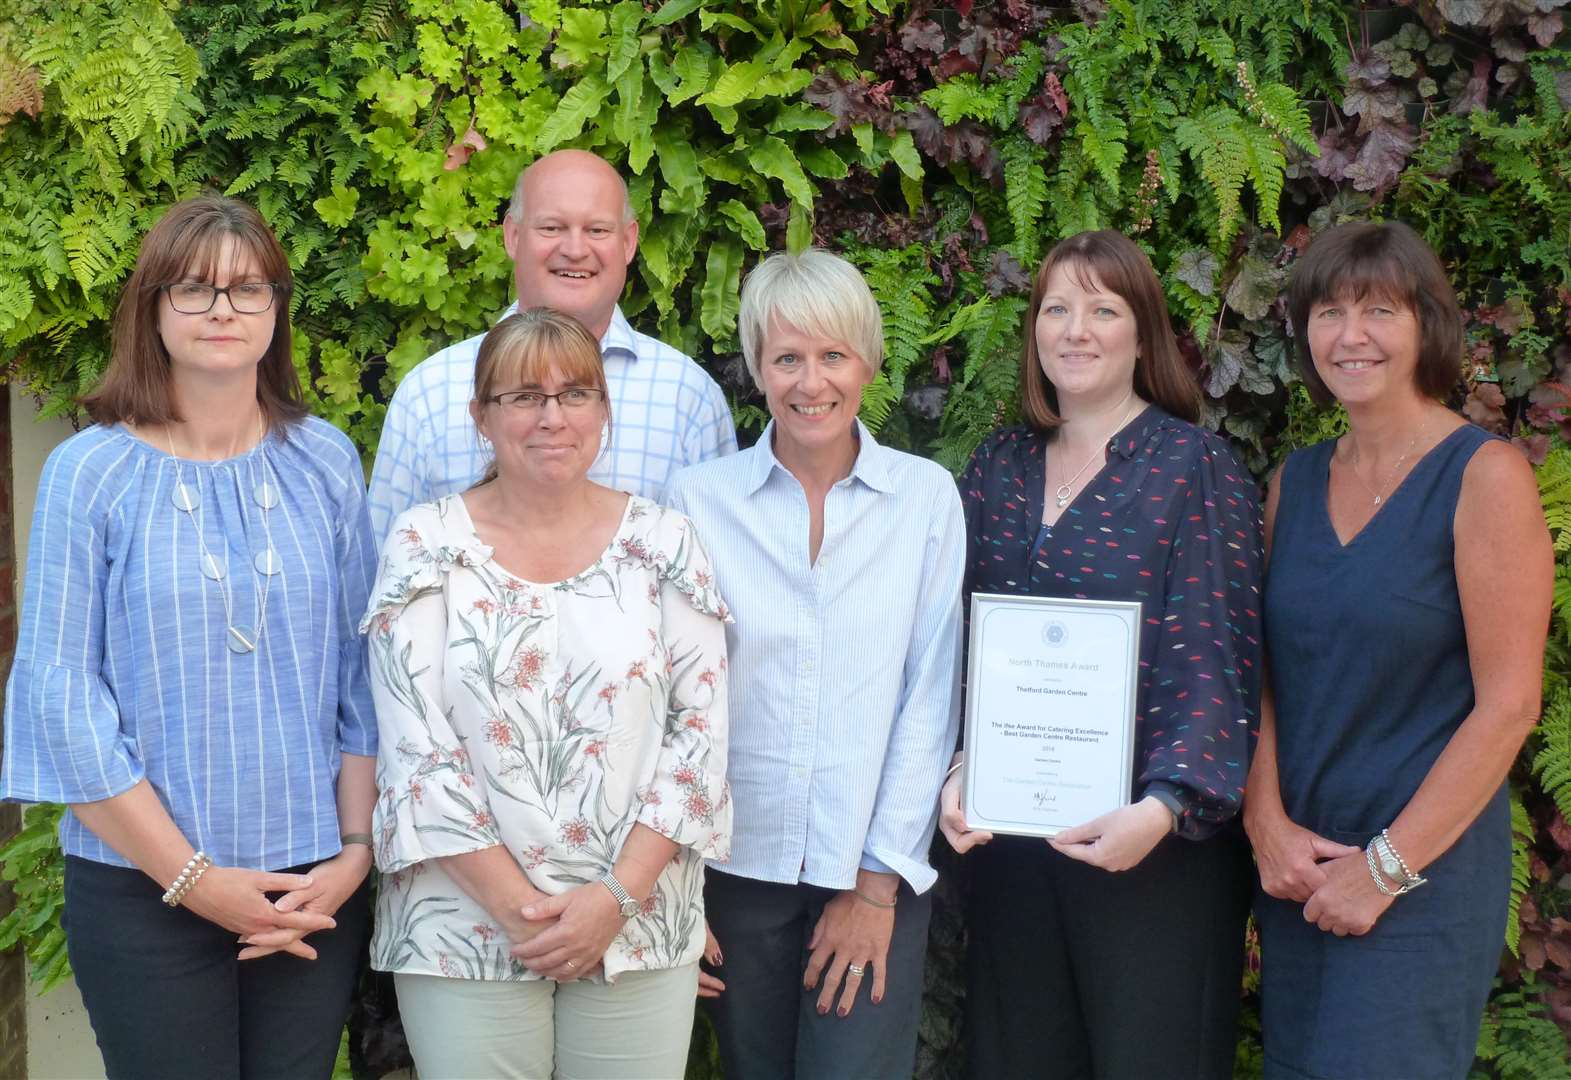 Awards blossom for garden centre